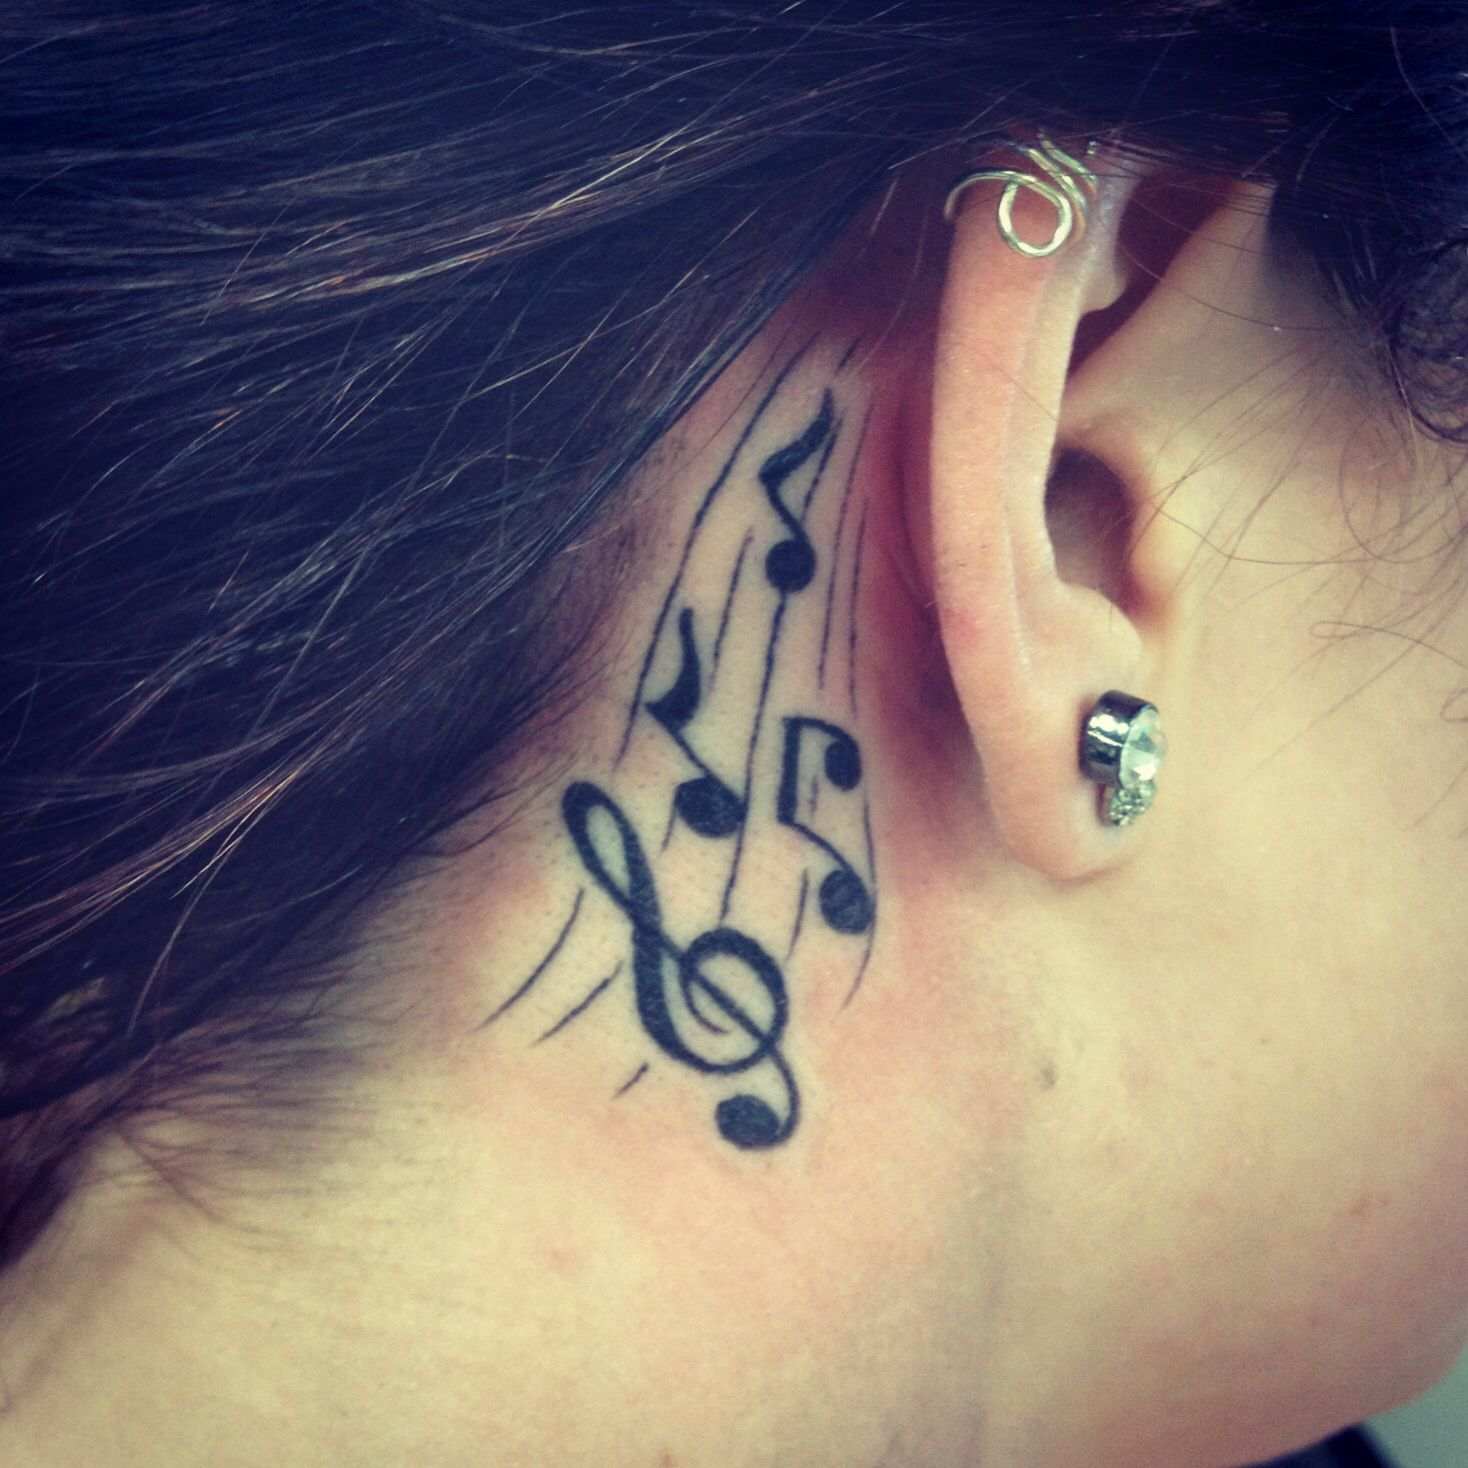 Music Notes Behind The Ear Tattooes Tattoos Music border=